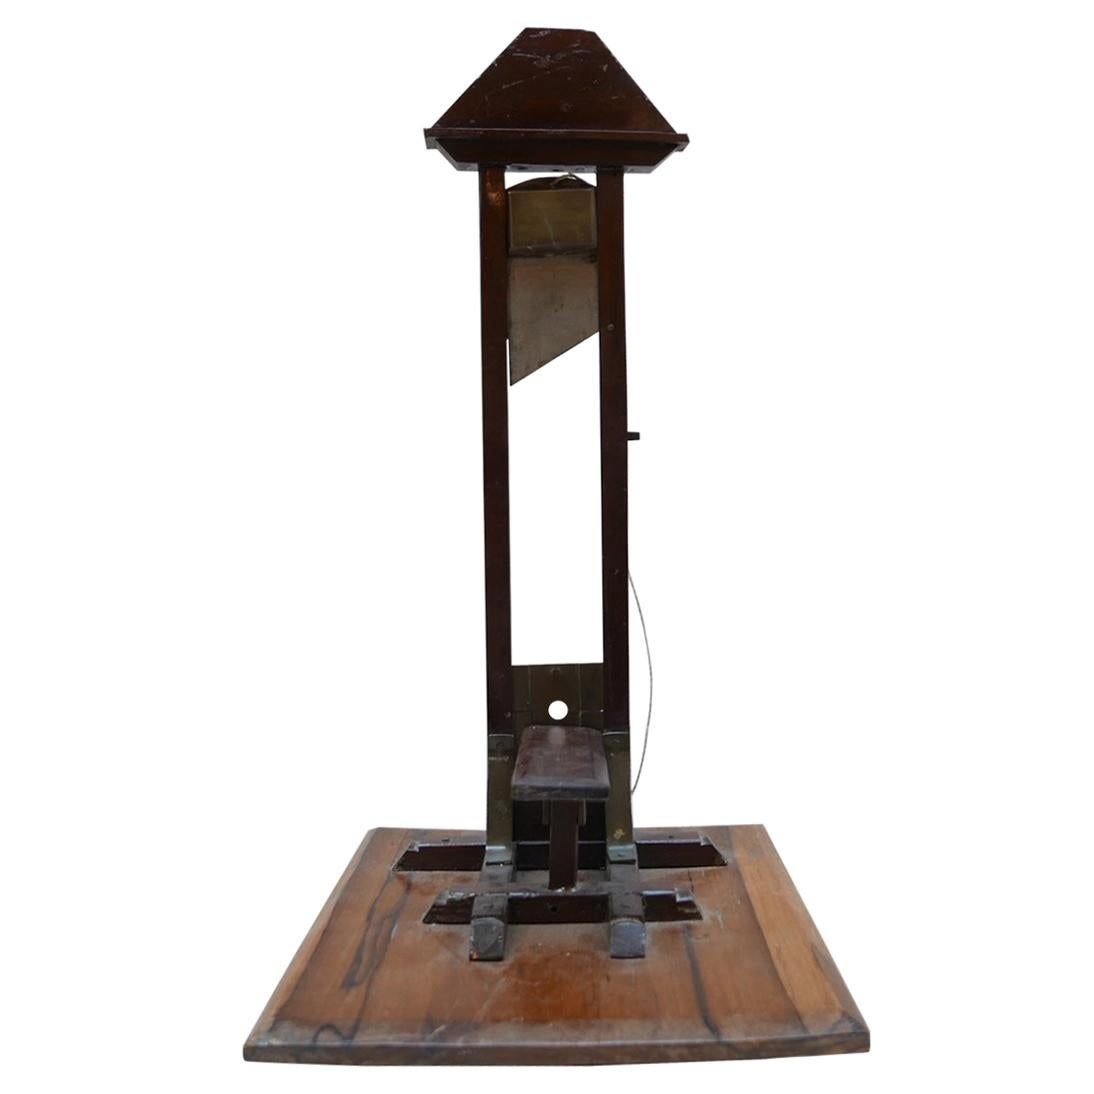 Early 20th century French Cigar Cutter Model of a Guillotine